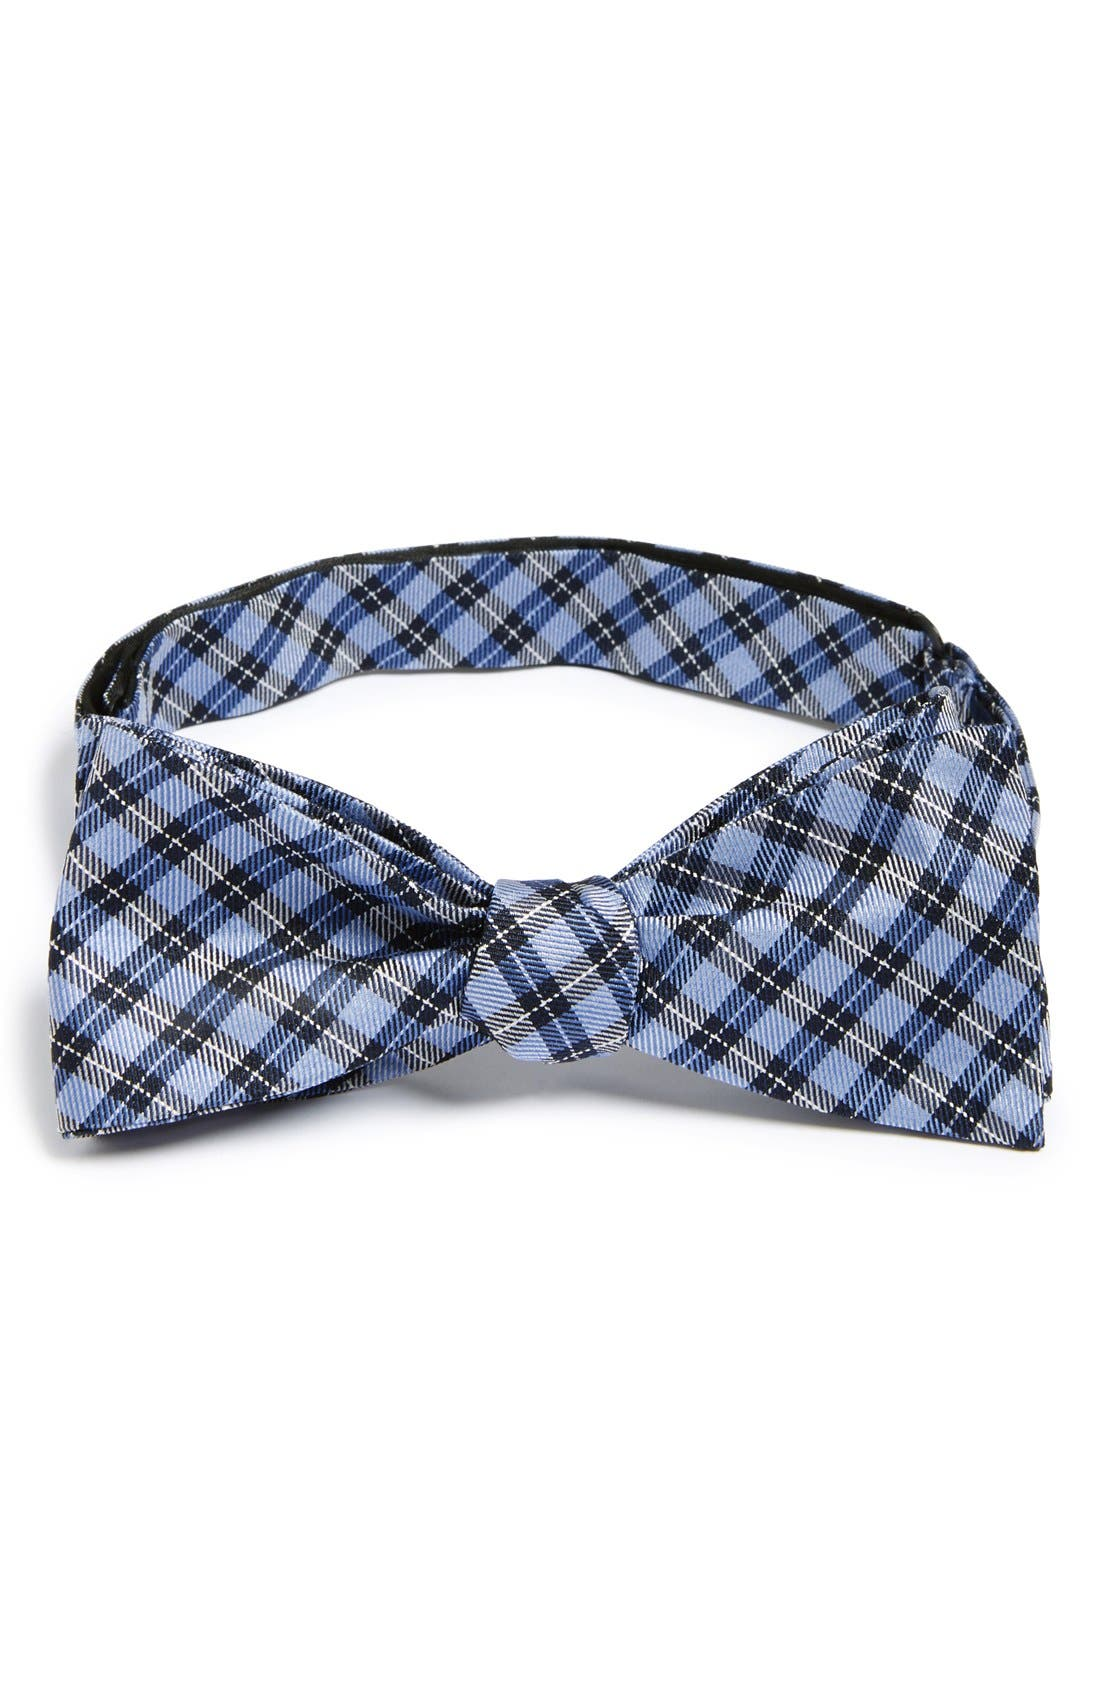 'Choi' Check Silk Bow Tie,                         Main,                         color,